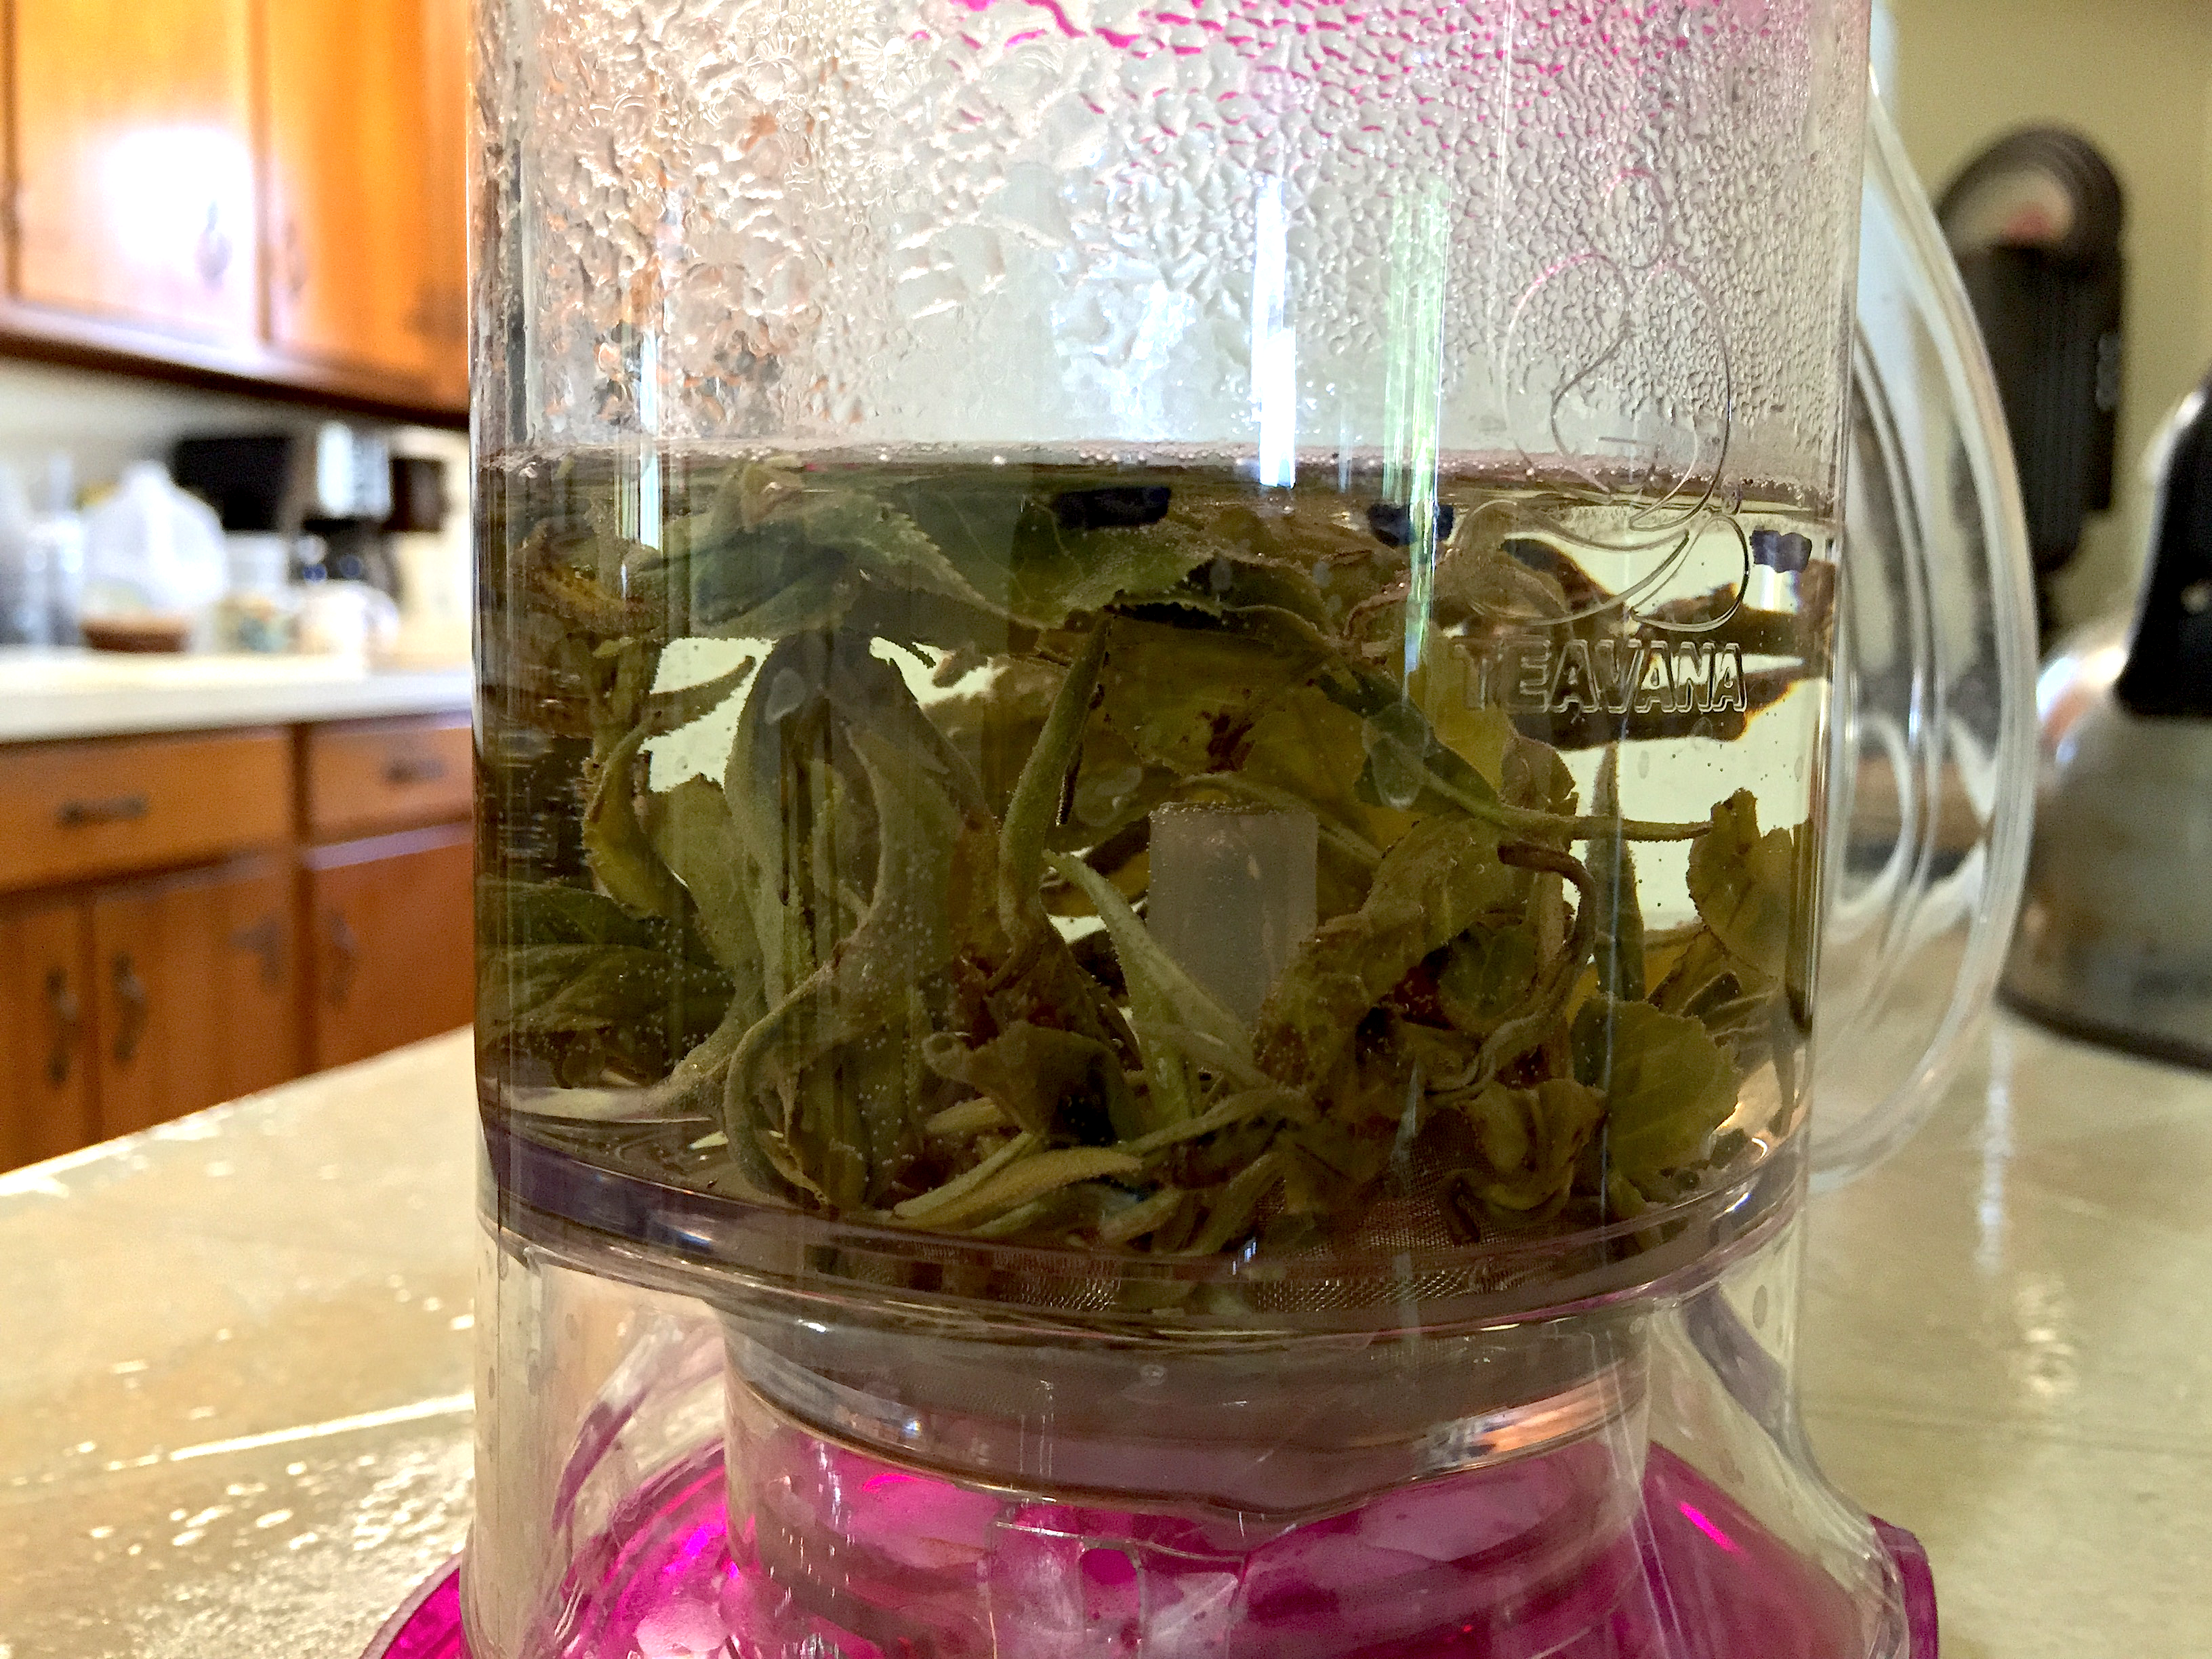 Pan Long Yin Hao Steeping by Jocilyn Mors is licensed under a Creative Commons Attribution 4.0 International License.